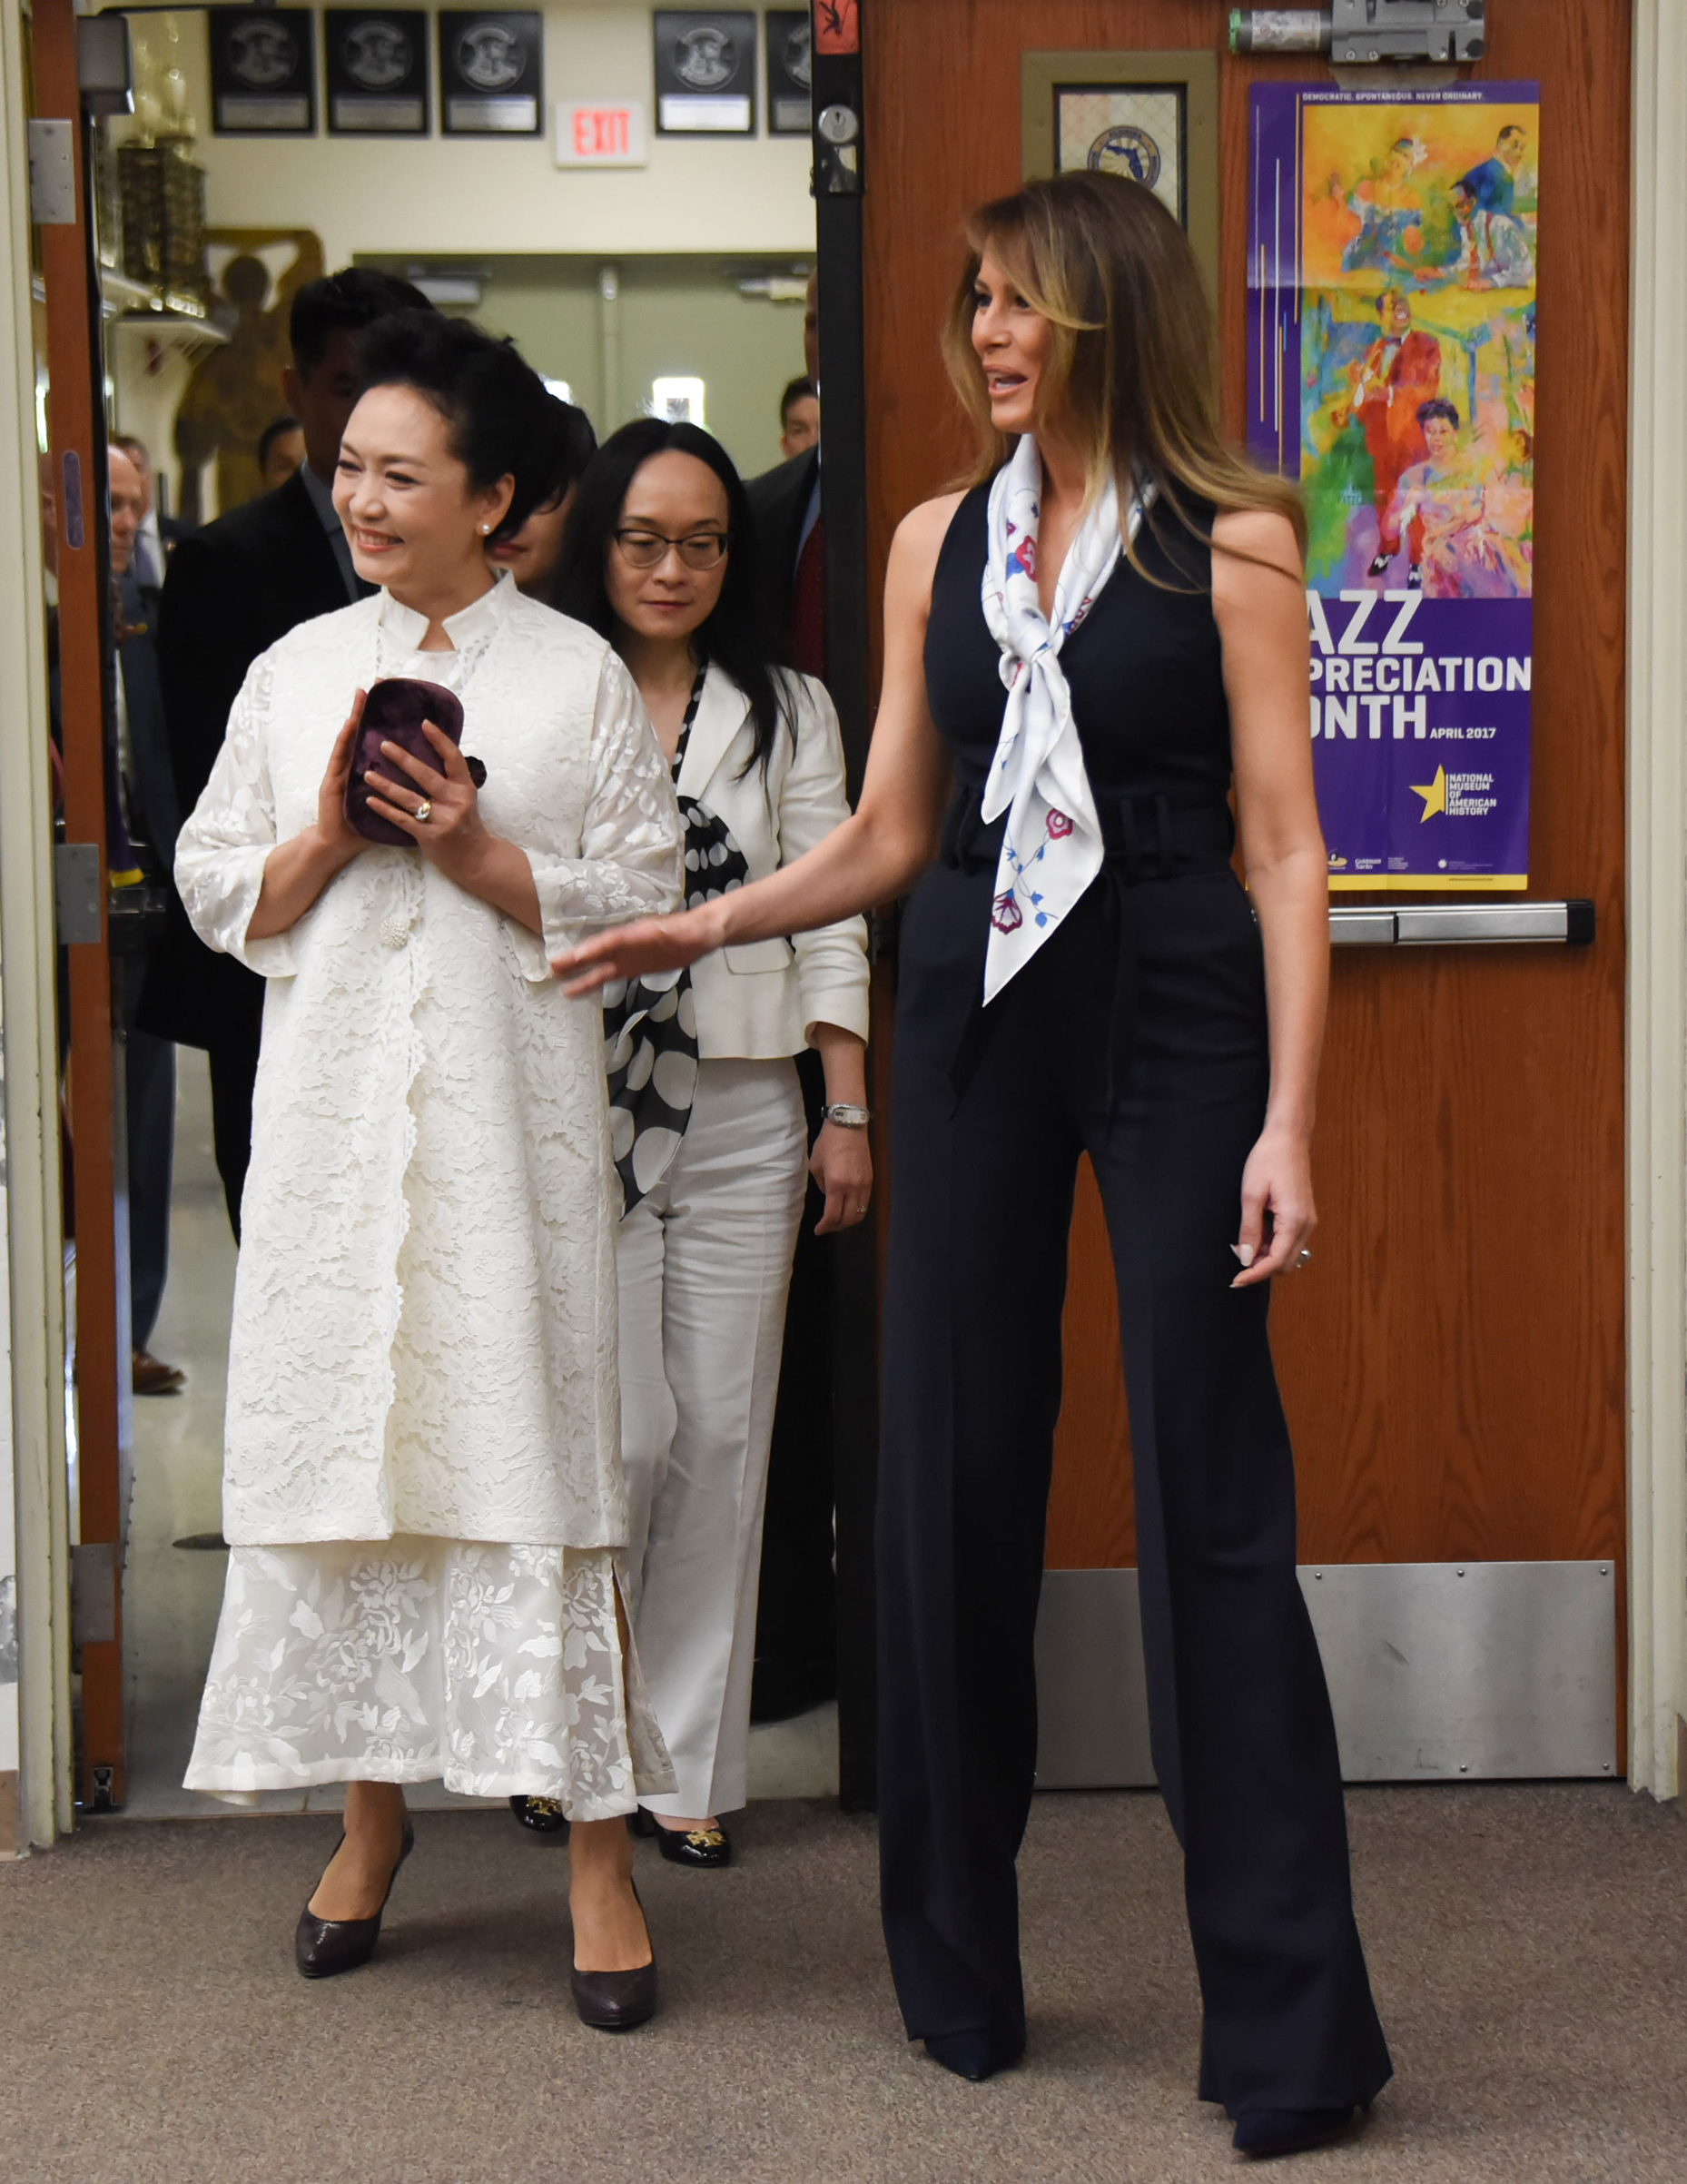 First lady Melania Trump  wearing black belted jumpsuit with a floral scarf and People's Republic of China First Lady Peng Liyuan visit the Bak Middle School of the Arts on April 7, 2017 in West Palm Beach, Florida.